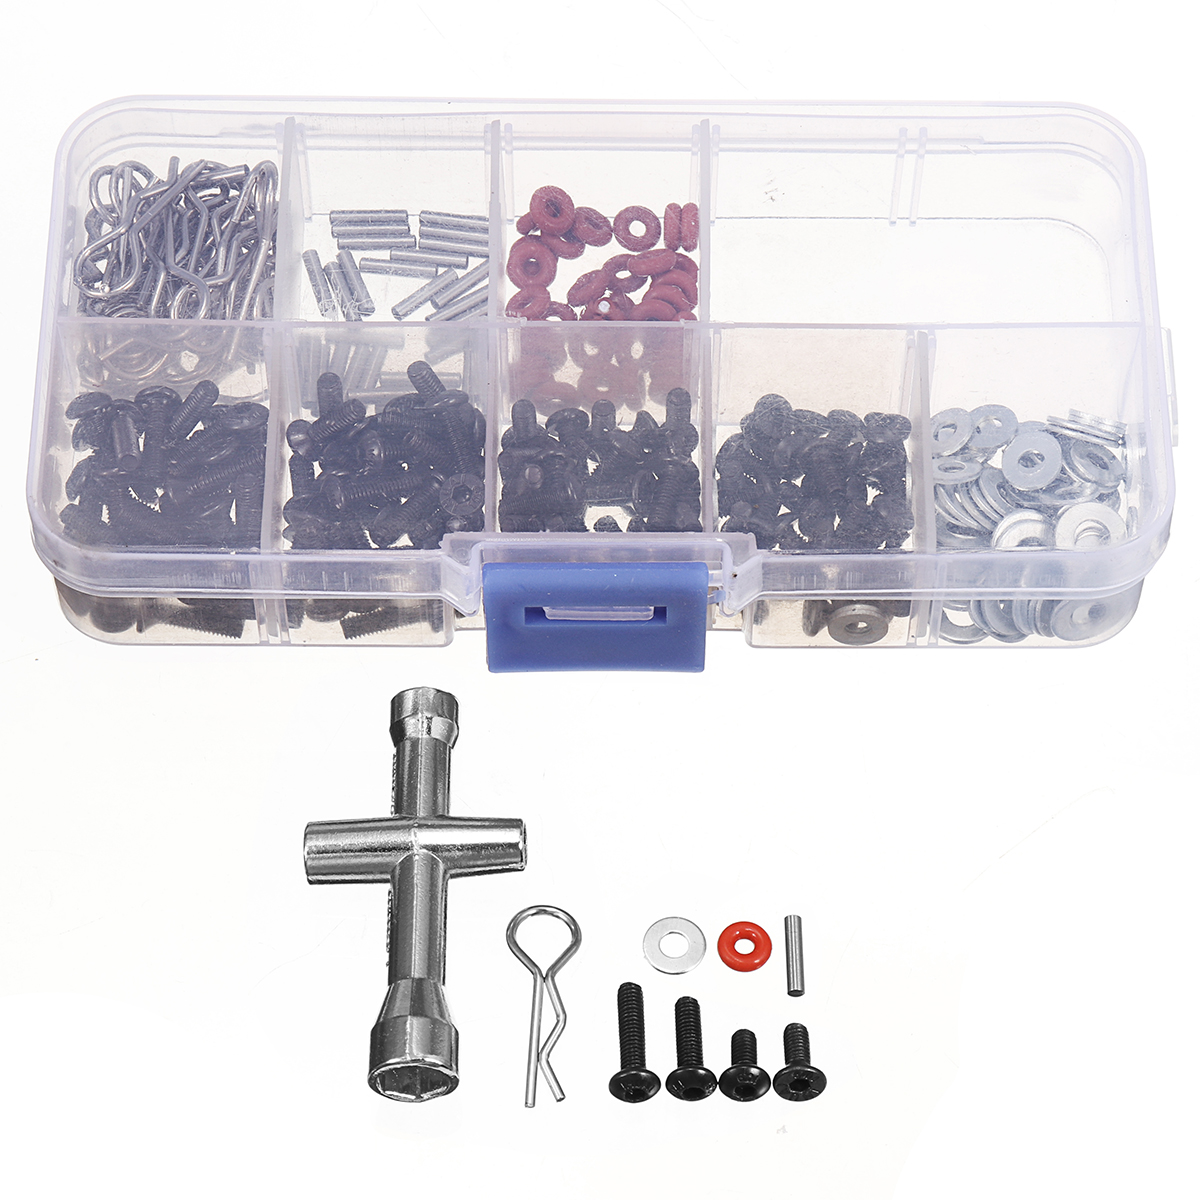 270pcs repair tool and screws box set for 1 10 hsp rc car including hexagon wrench box packed. Black Bedroom Furniture Sets. Home Design Ideas